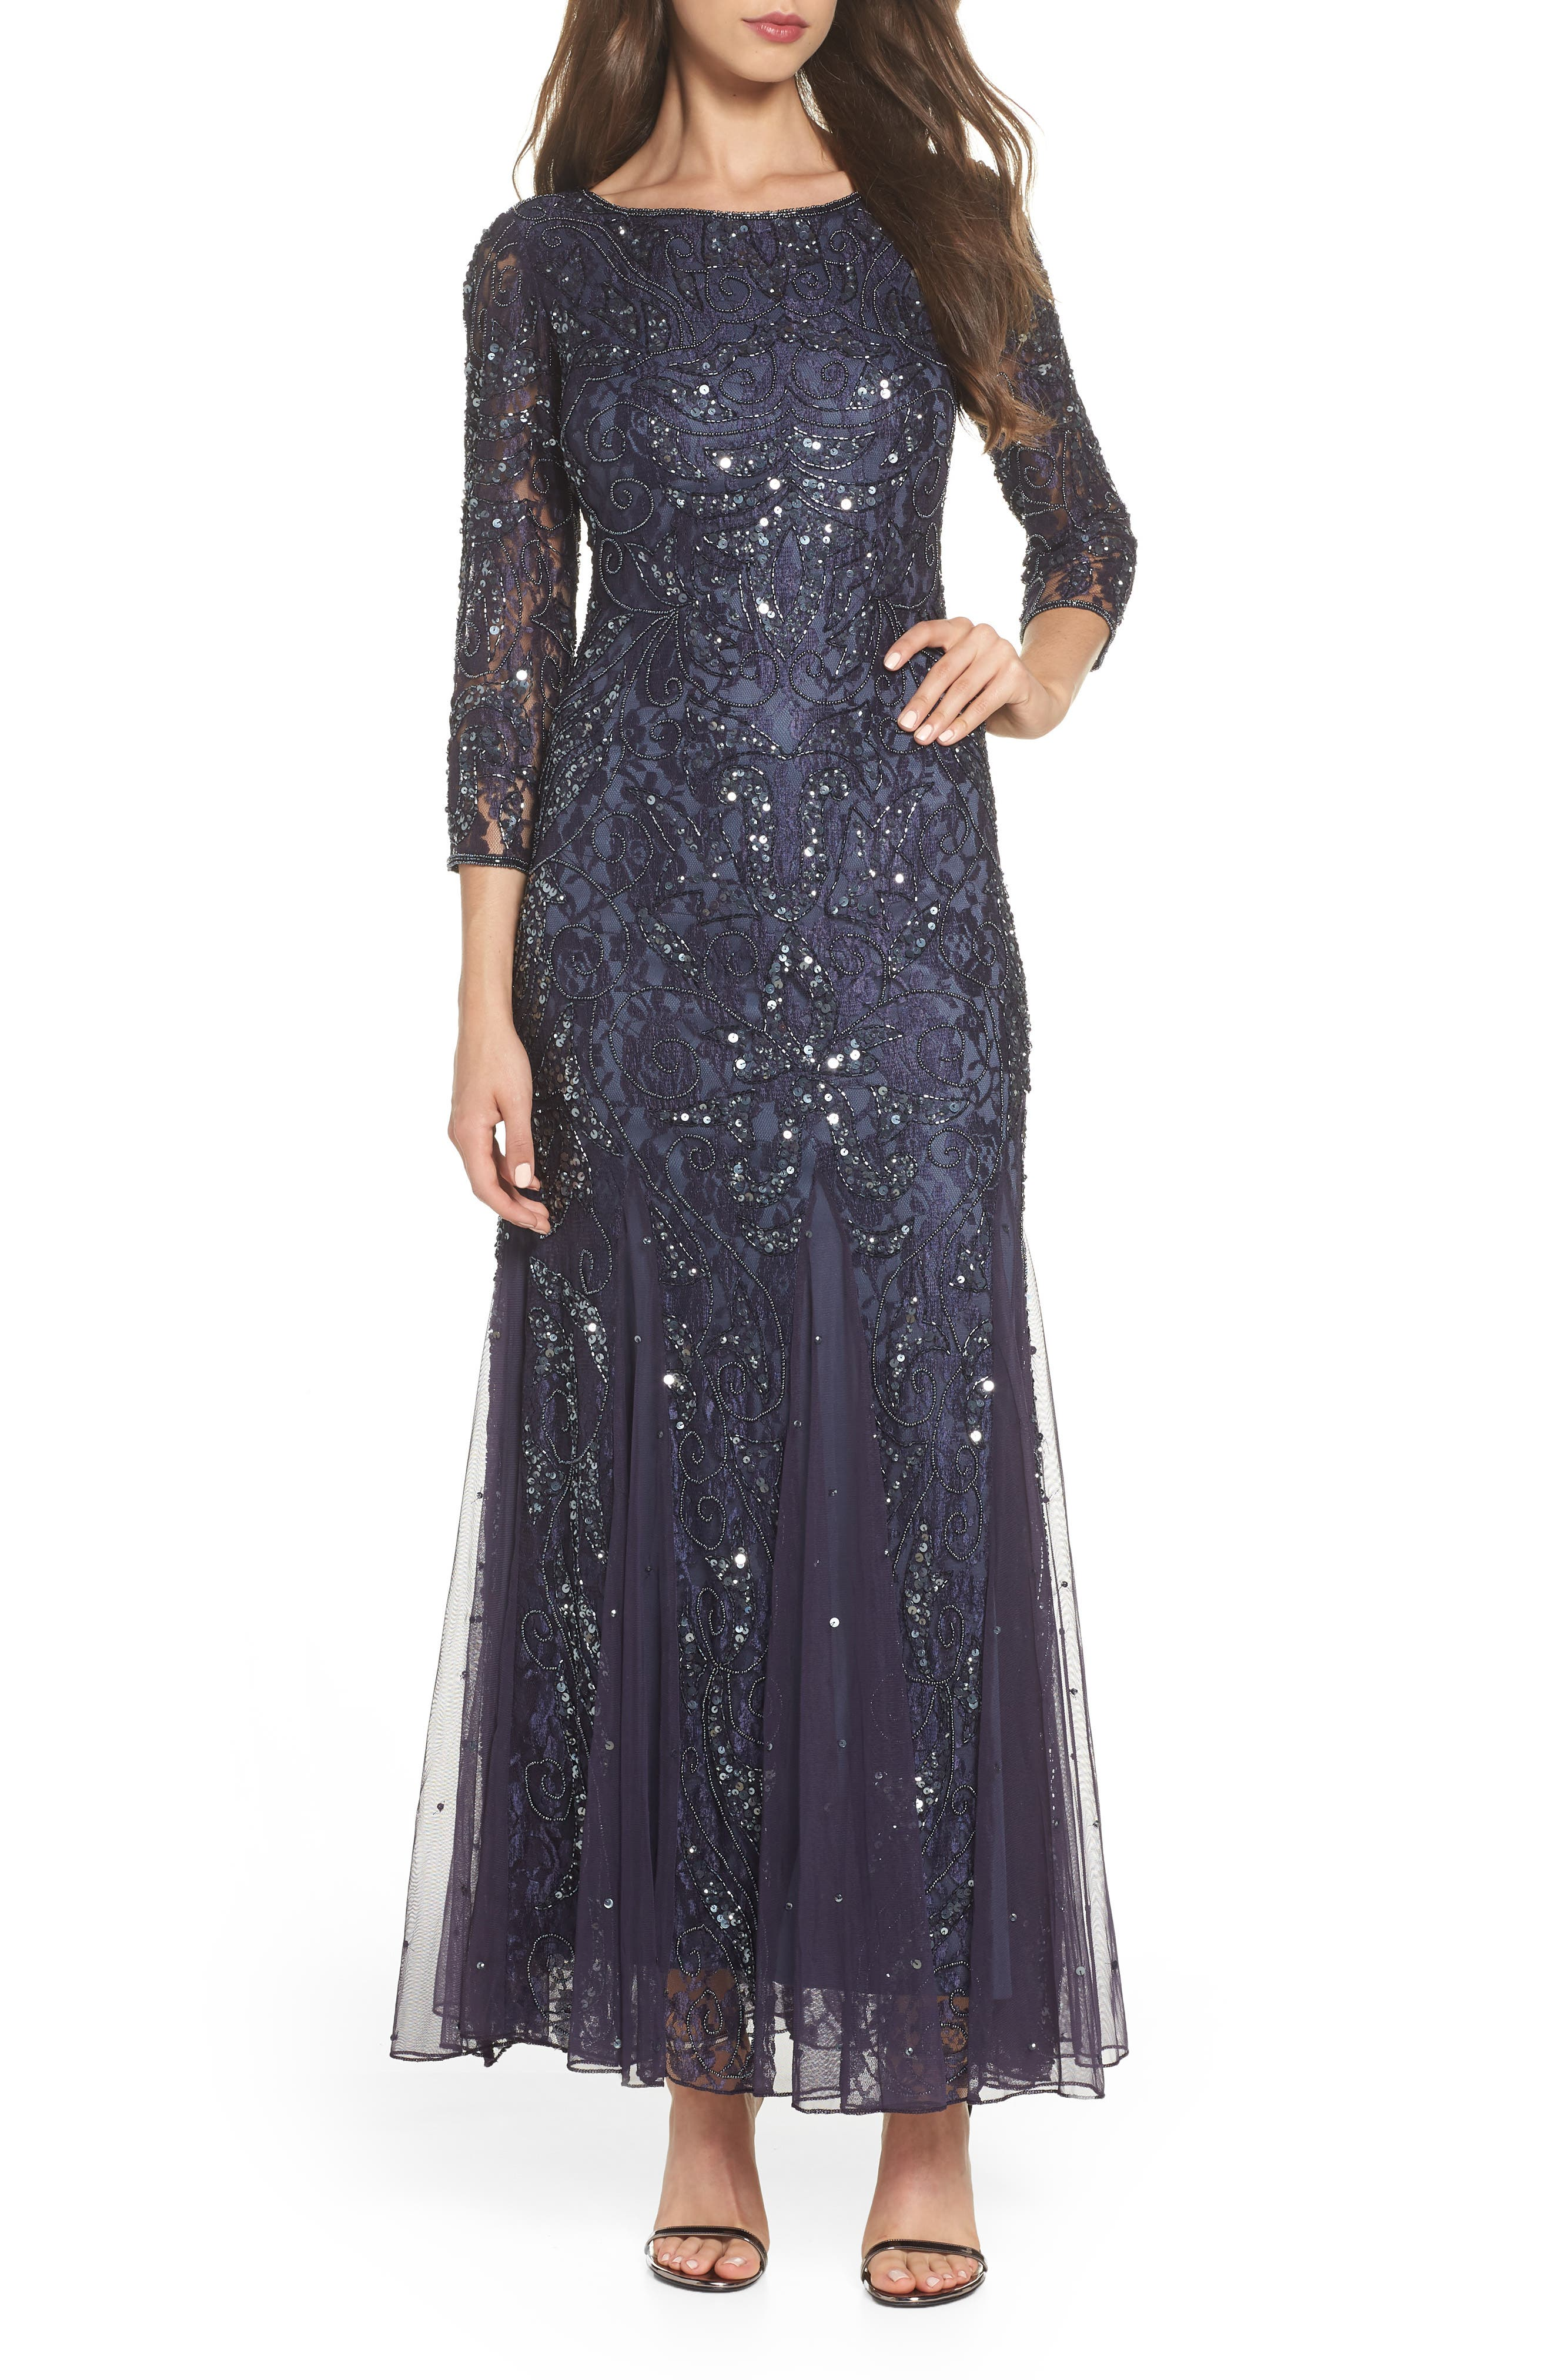 1920s Evening Dresses & Formal Gowns Pisarro Nights Beaded Lace Gown Size 2P - Grey $218.00 AT vintagedancer.com